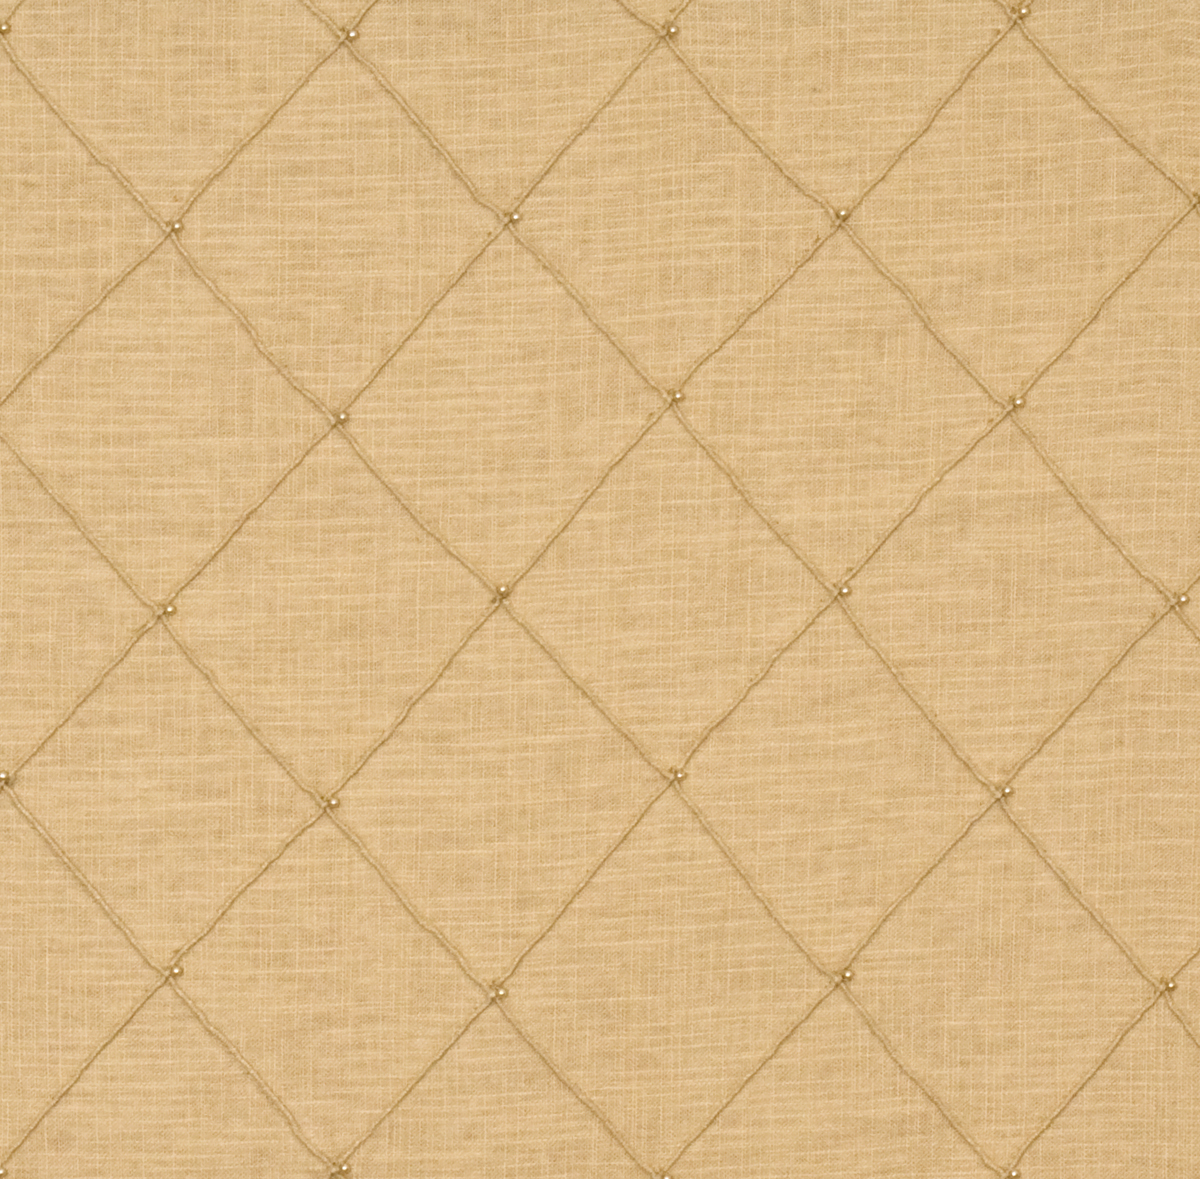 Home Decor 8\u0022x8\u0022 Fabric Swatch-Jaclyn Smith Jasso-Oatmeal